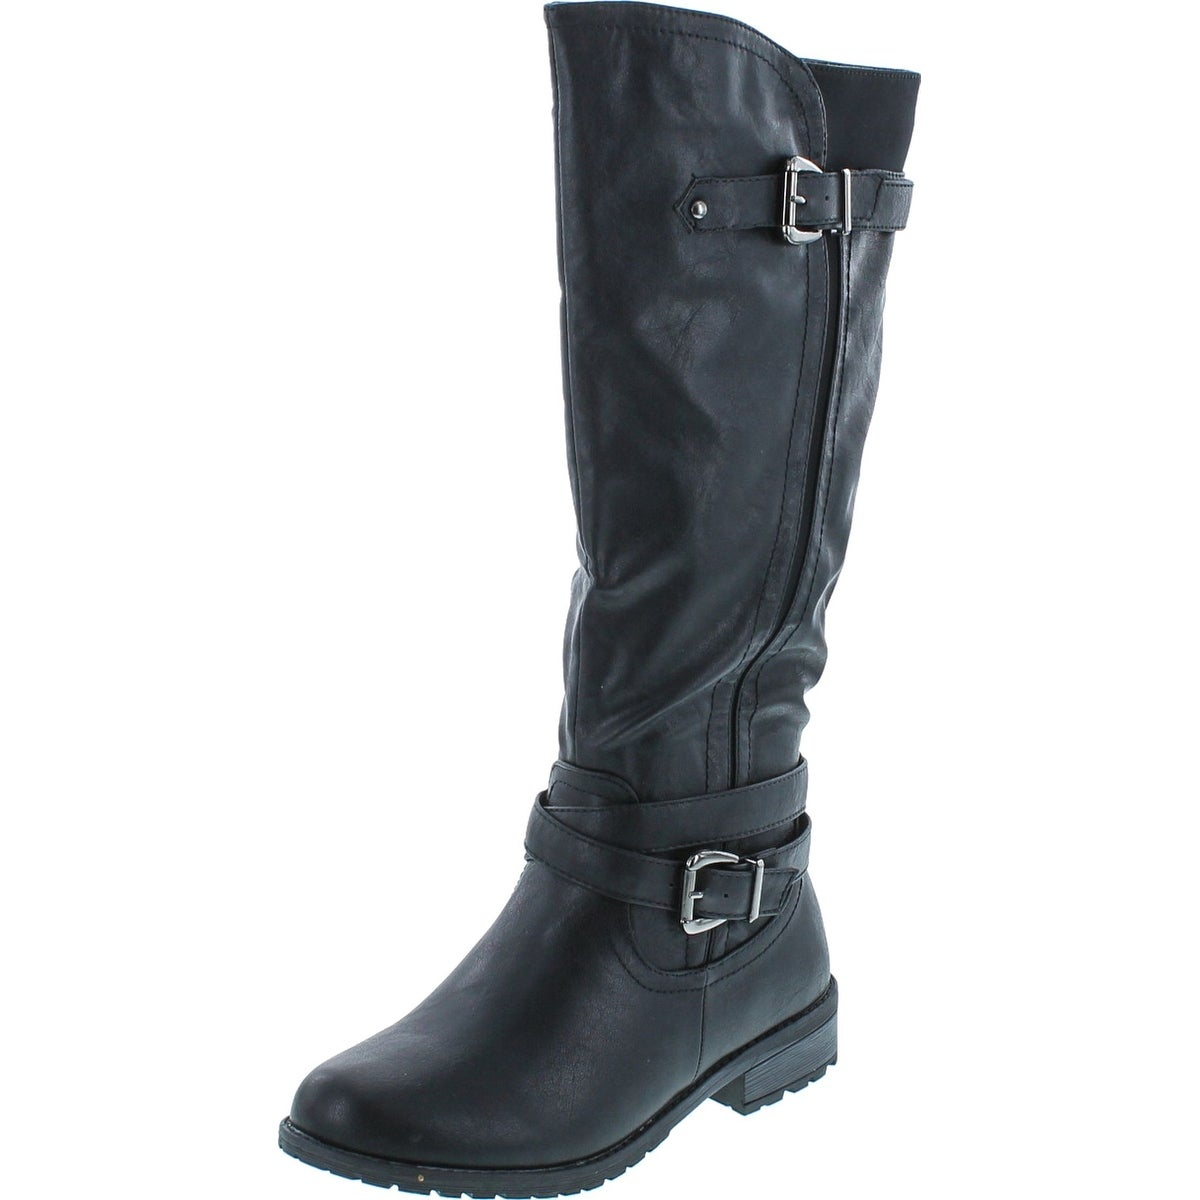 great variety styles for sale los angeles Forever Mango-24 Women's Shaft Side Zipper Knee High Flat Riding Boots